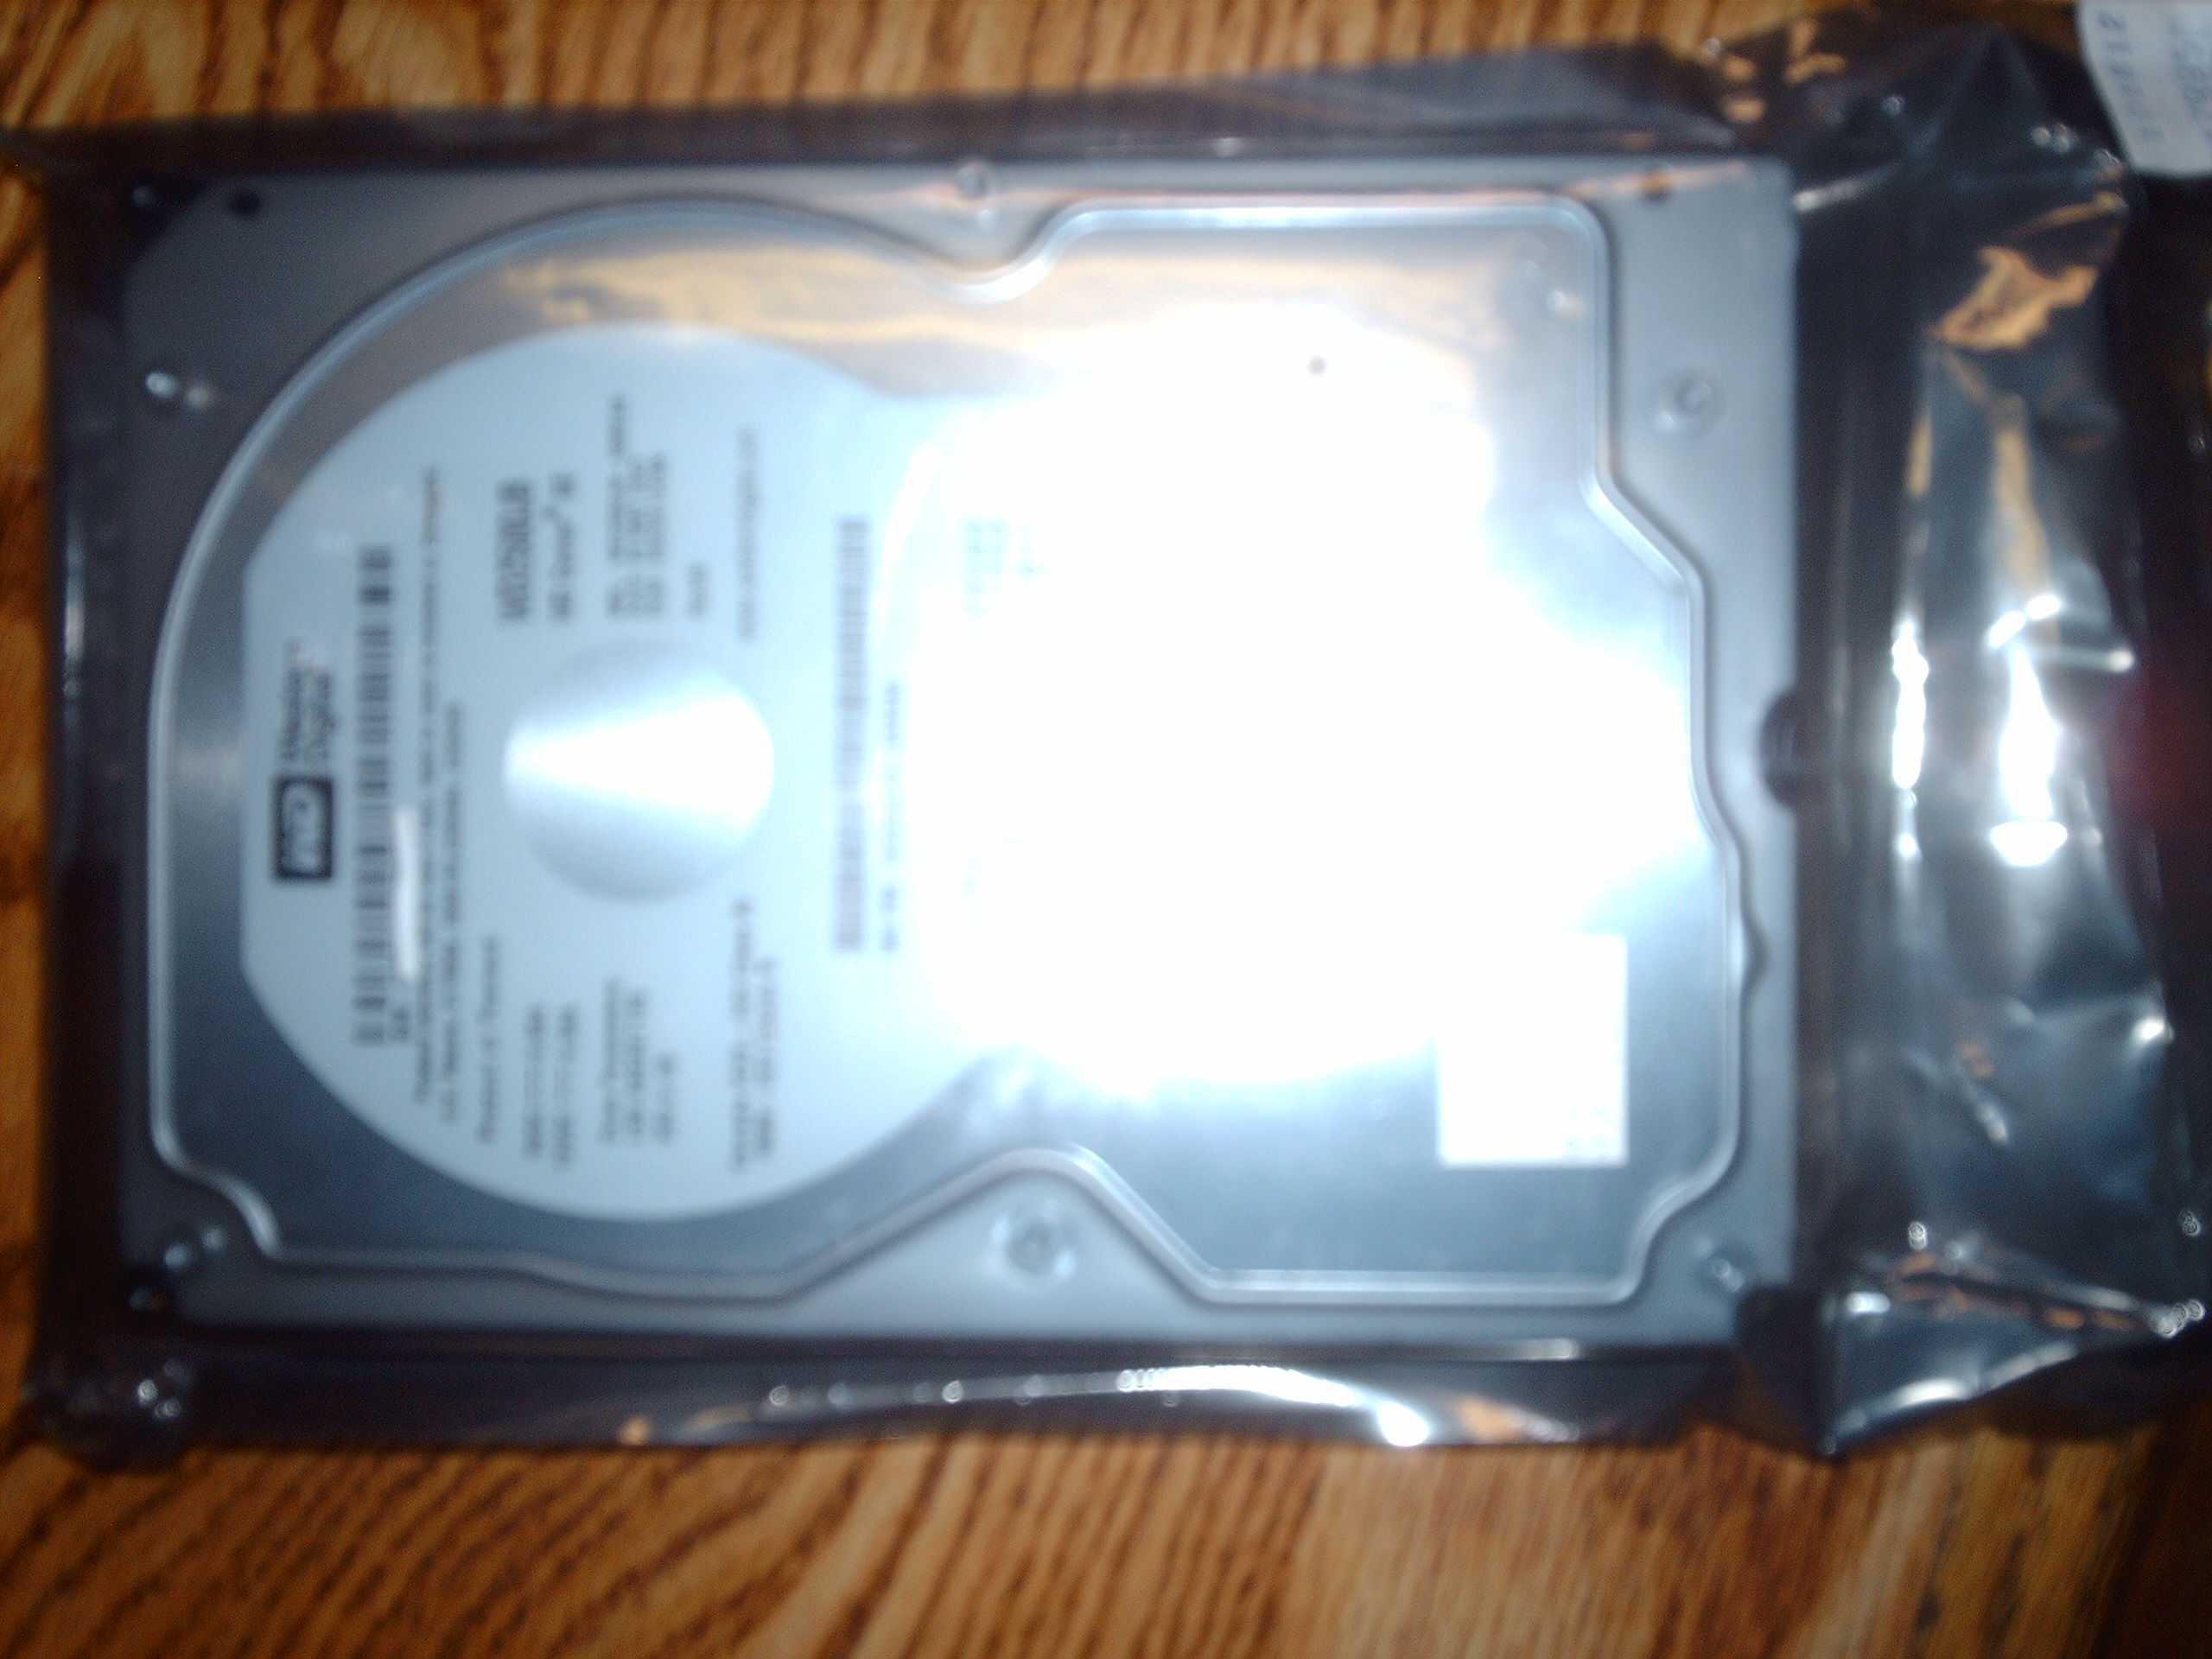 NEW Western Digital 250GB PATA Hard Drive, 7200 RPM